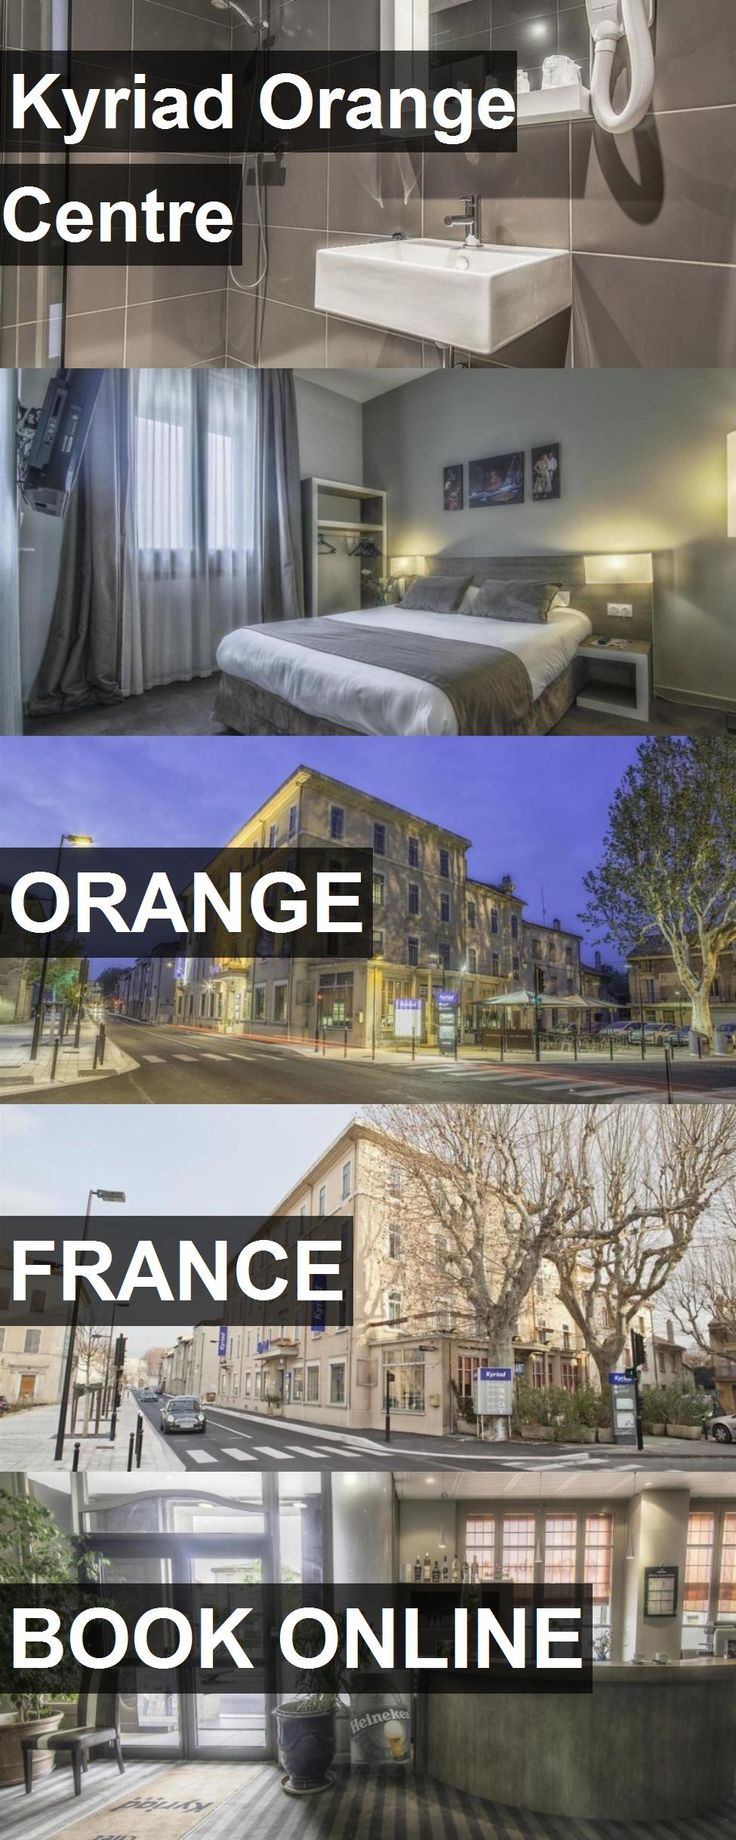 Hotel Kyriad Orange Centre in Orange, France. For more information, photos, reviews and best prices please follow the link. #France #Orange #KyriadOrangeCentre #hotel #travel #vacation